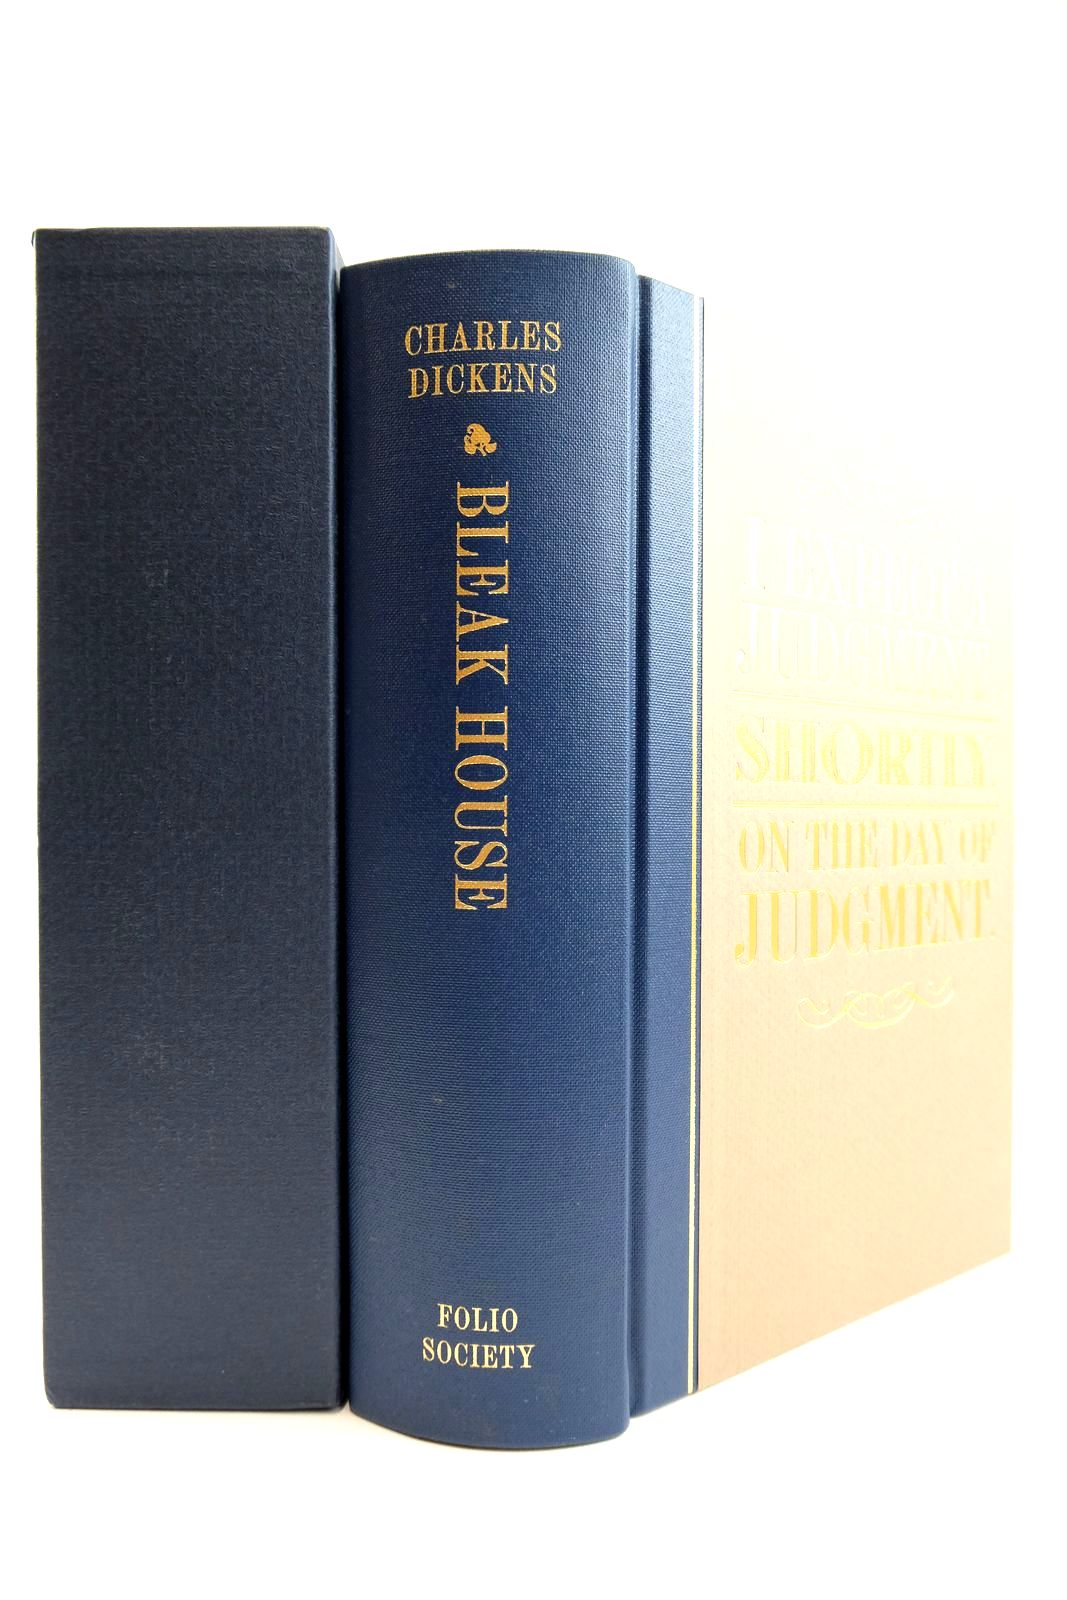 Photo of BLEAK HOUSE written by Dickens, Charles illustrated by Phiz, published by Folio Society (STOCK CODE: 2132377)  for sale by Stella & Rose's Books